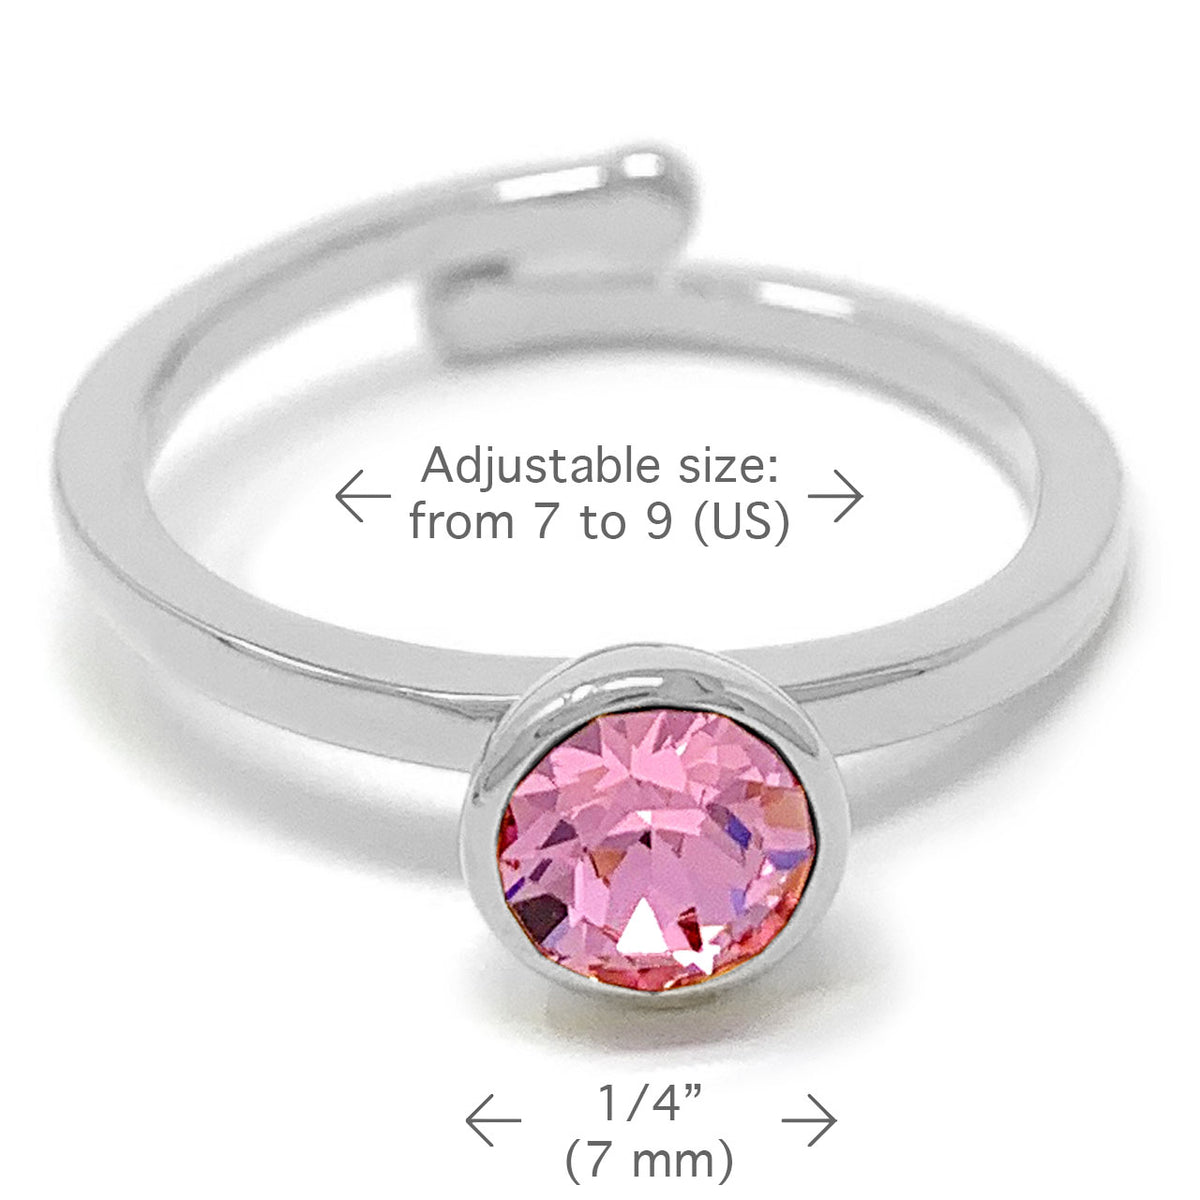 Harley Adjustable Ring with Pink Light Rose Round Crystals from Swarovski Silver Toned Rhodium Plated - Ed Heart